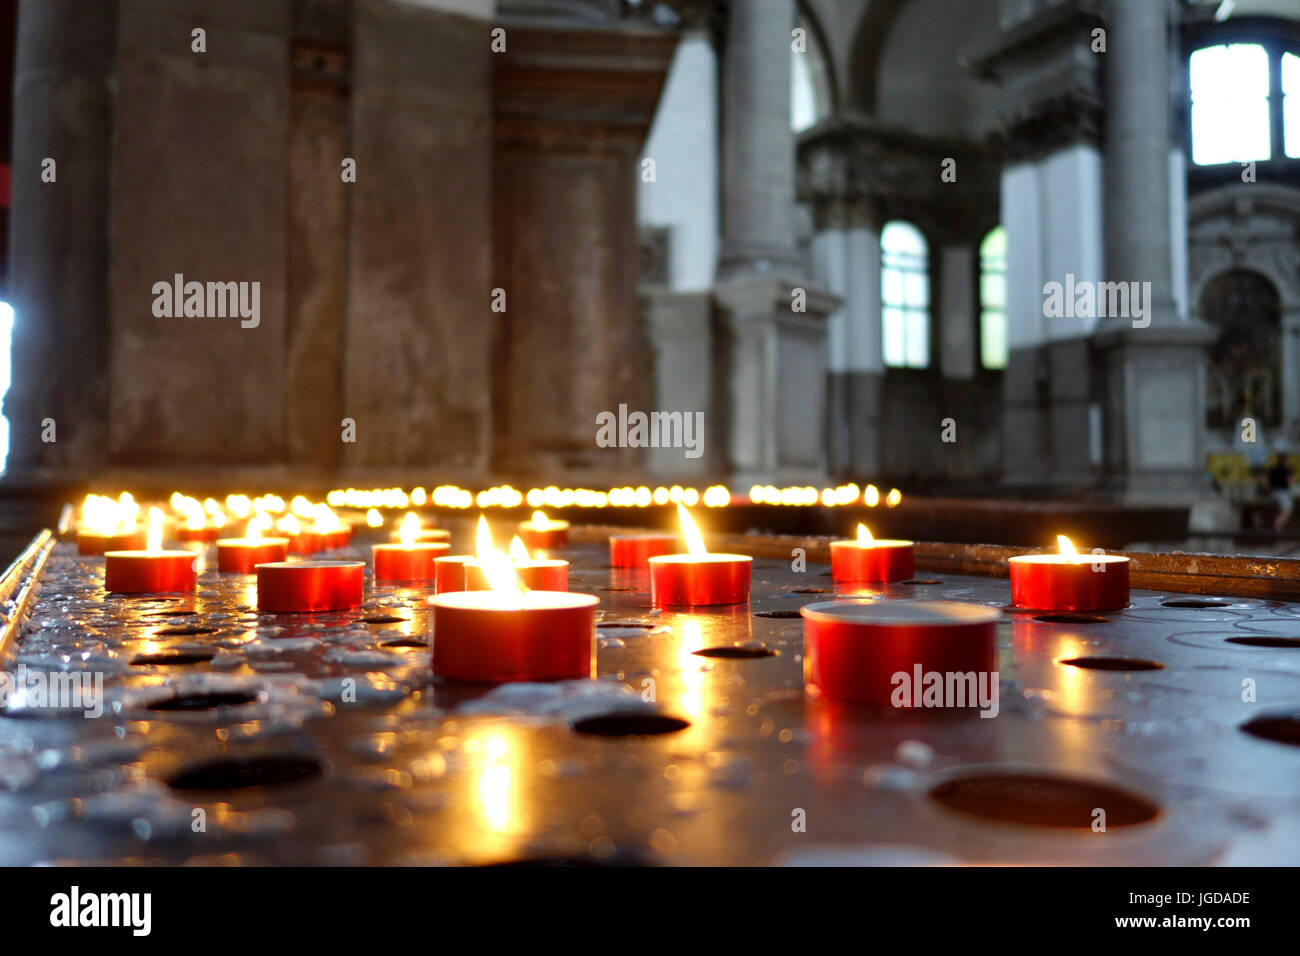 Lit prayer candles in a Catholic church, Venice, Italy - Stock Image